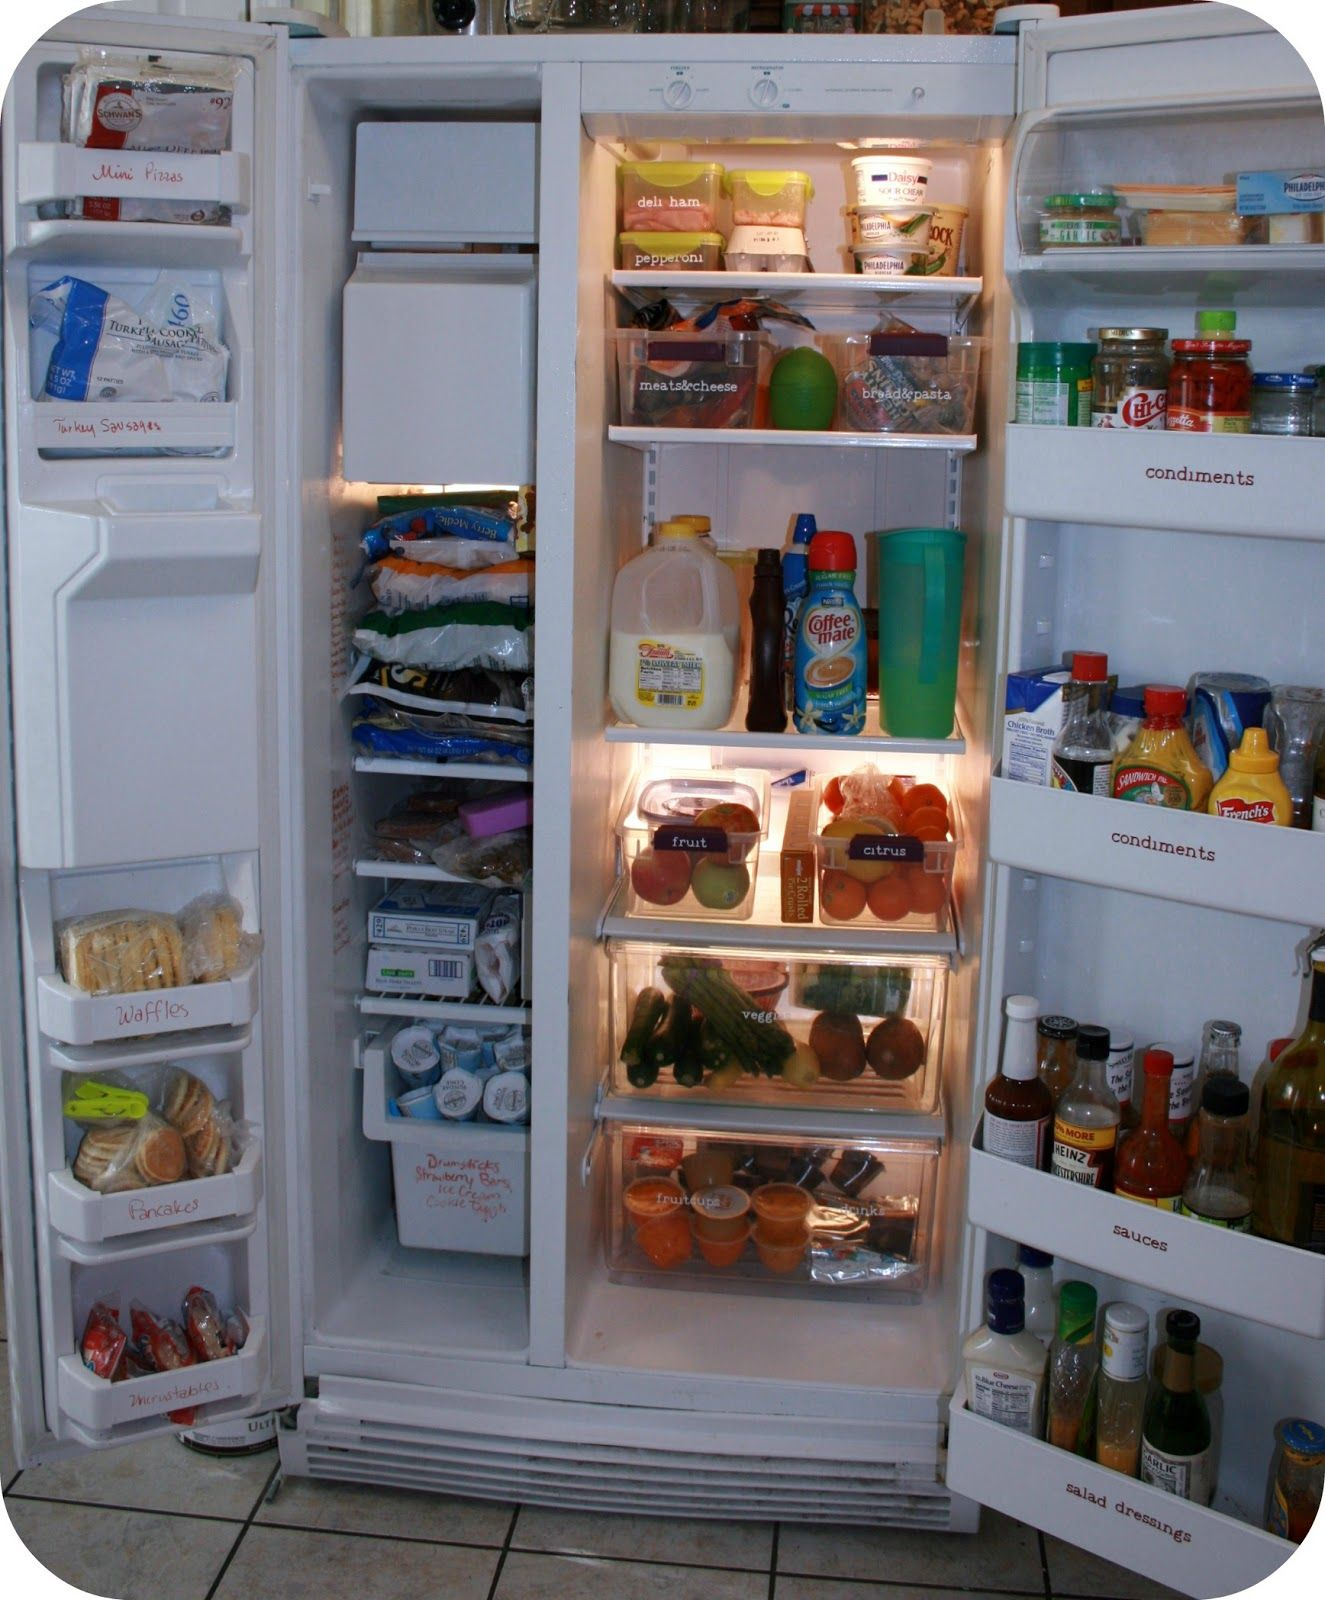 Organizing Your Refrigerator Mom 4 Real Fridge Organization Refrigerator Organization Freezer Organization